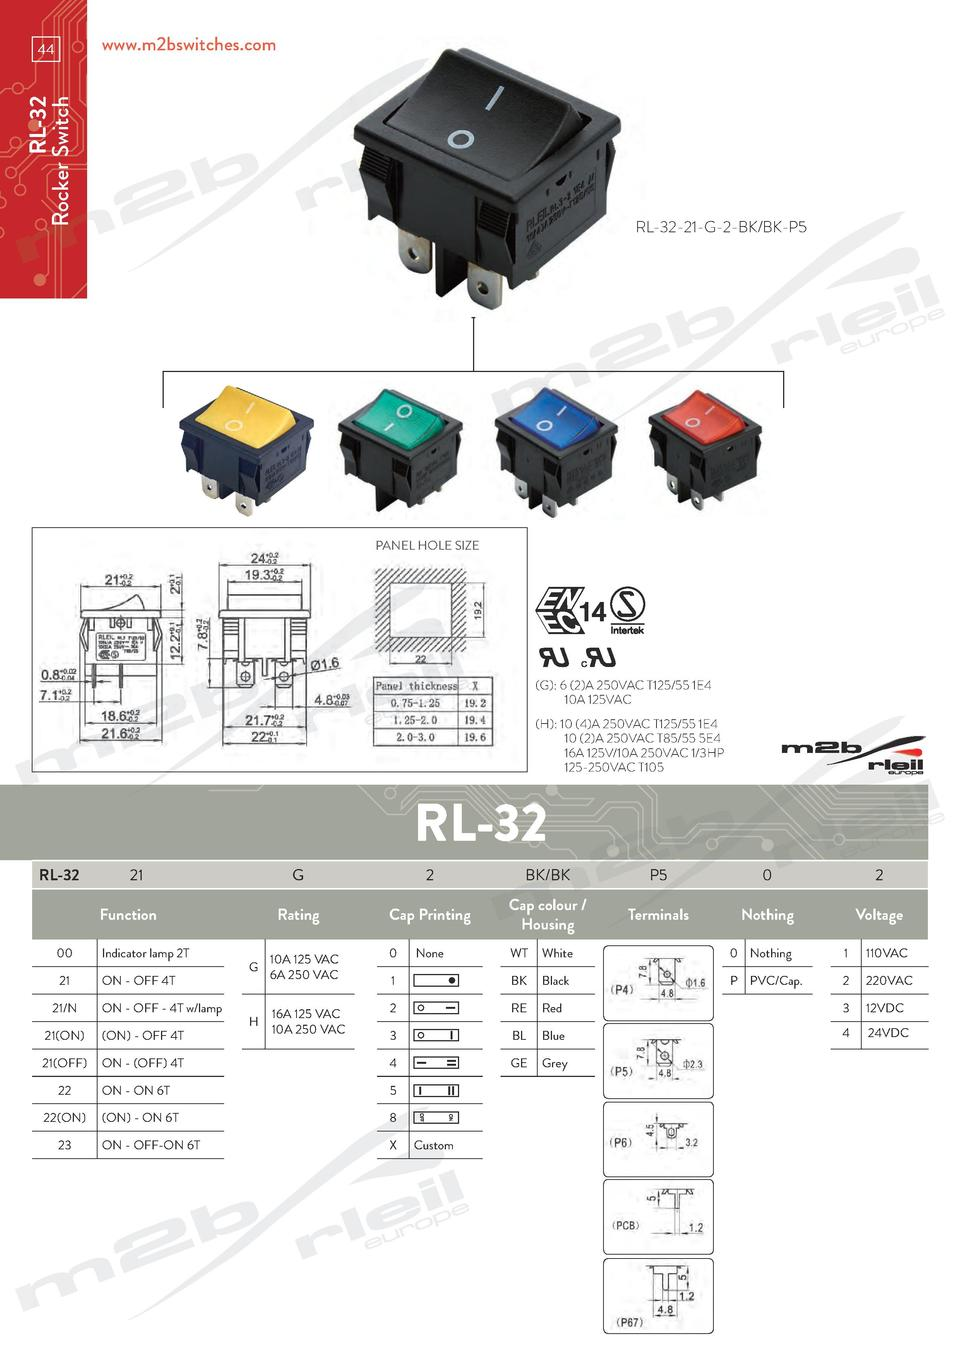 www.m2bswitches.com  RL-32 Rocker Switch  44  RL-32-21-G-2-BK BK-P5  PANEL HOLE SIZE   G   6  2 A 250VAC T125 55 1E4   10A...